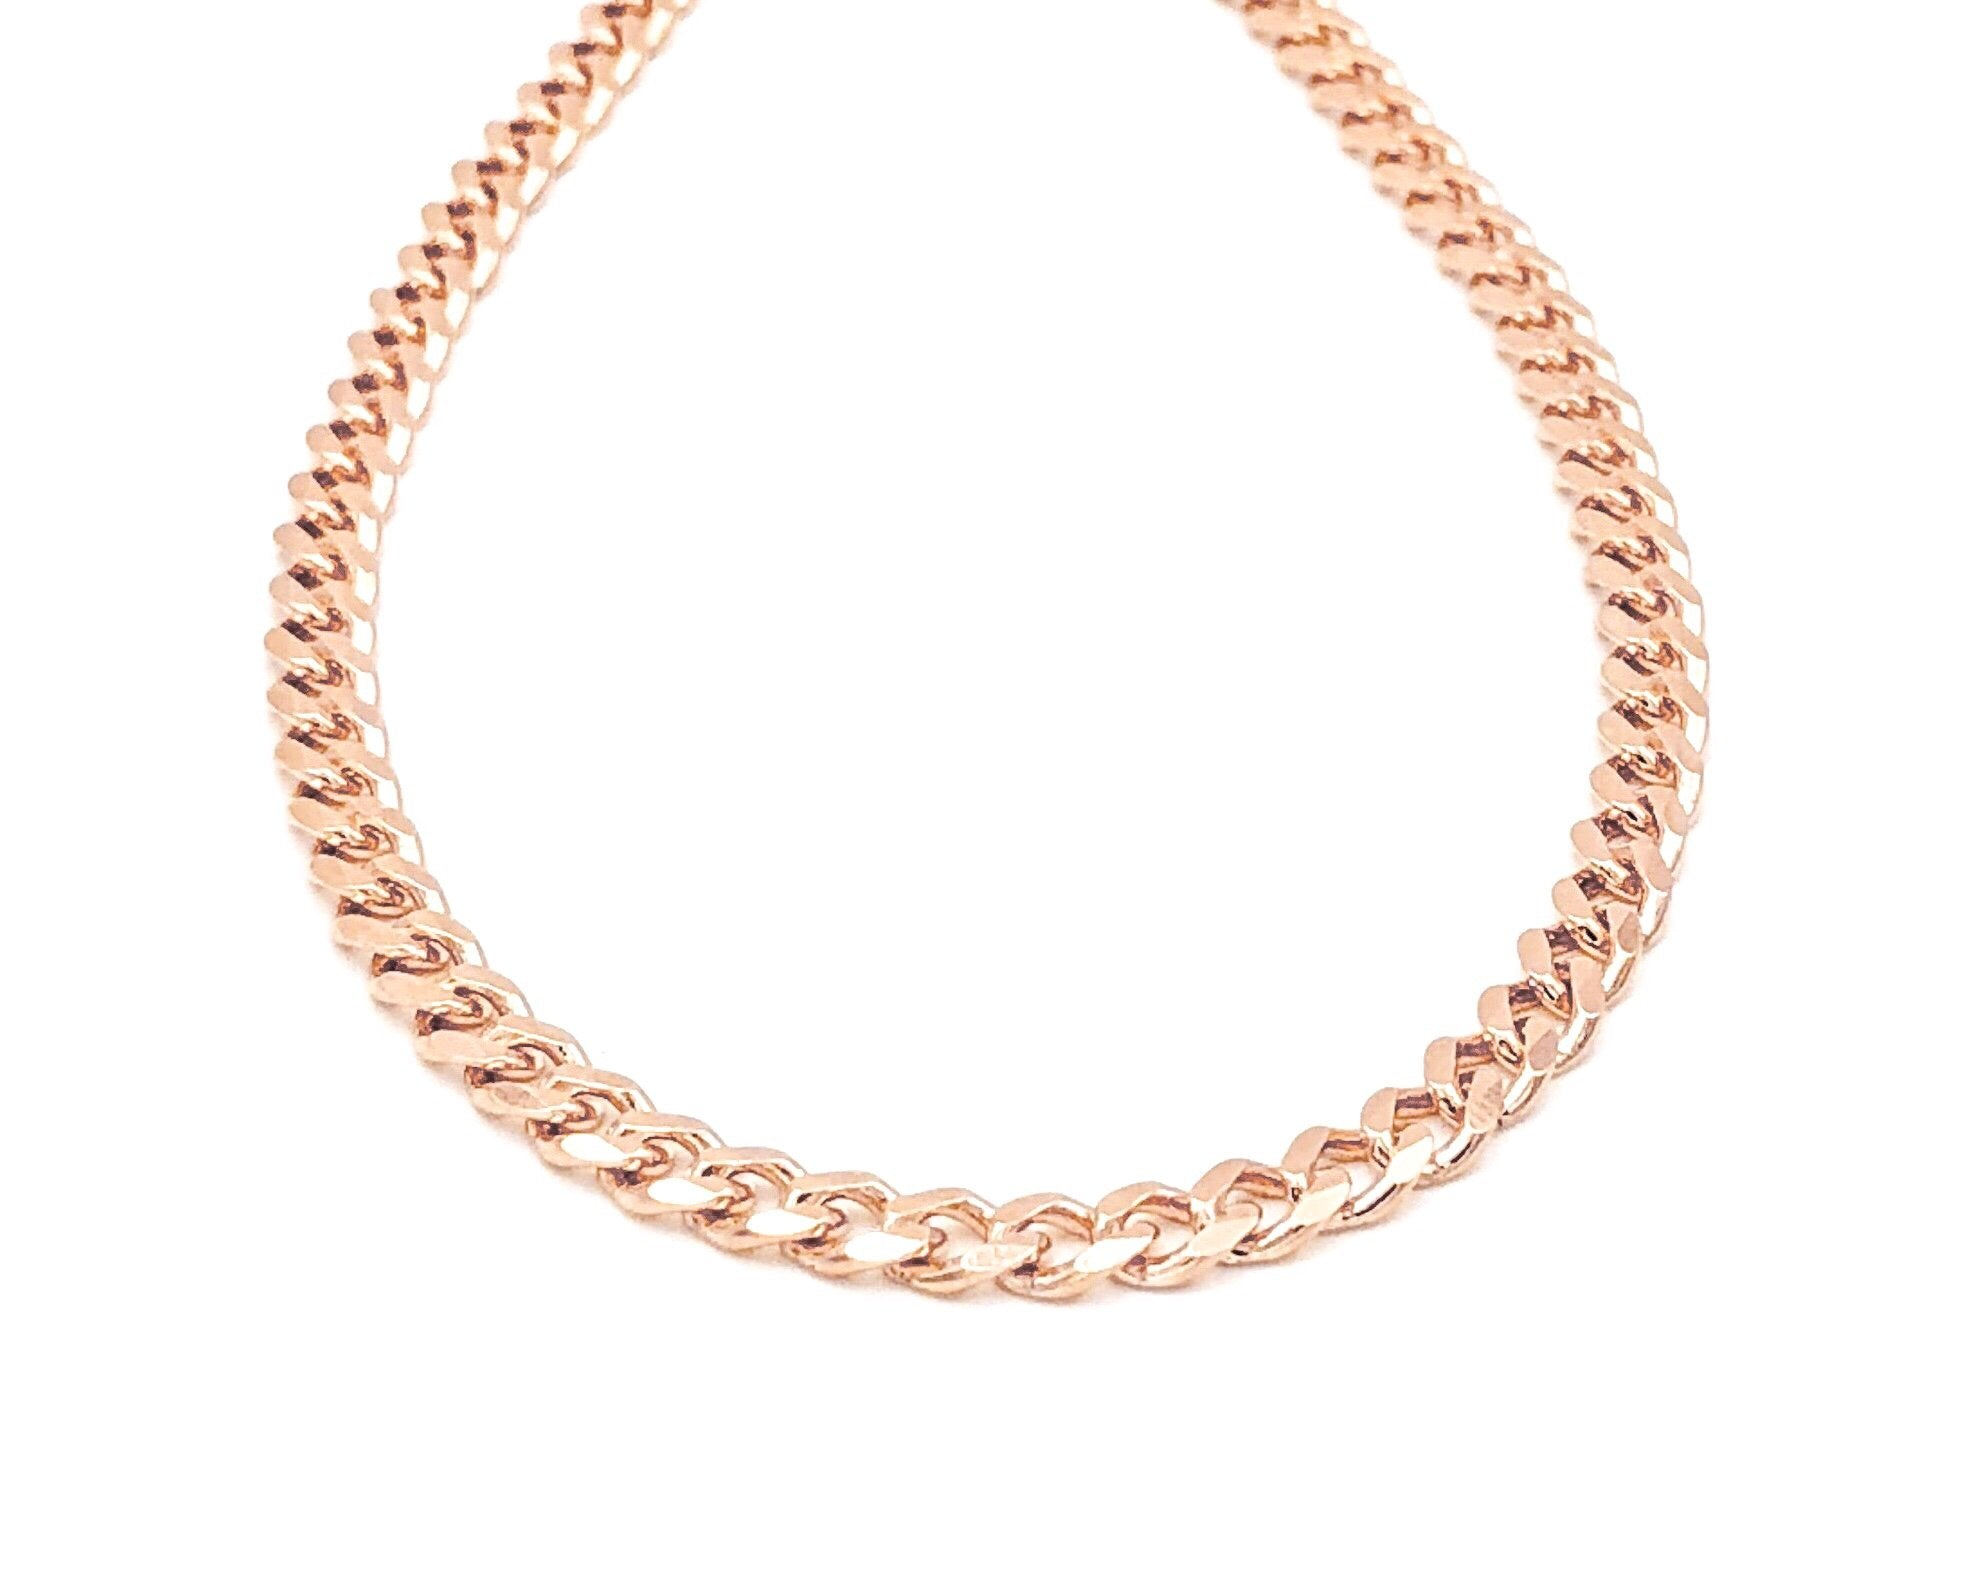 Curb Chain Necklace - 55 cm